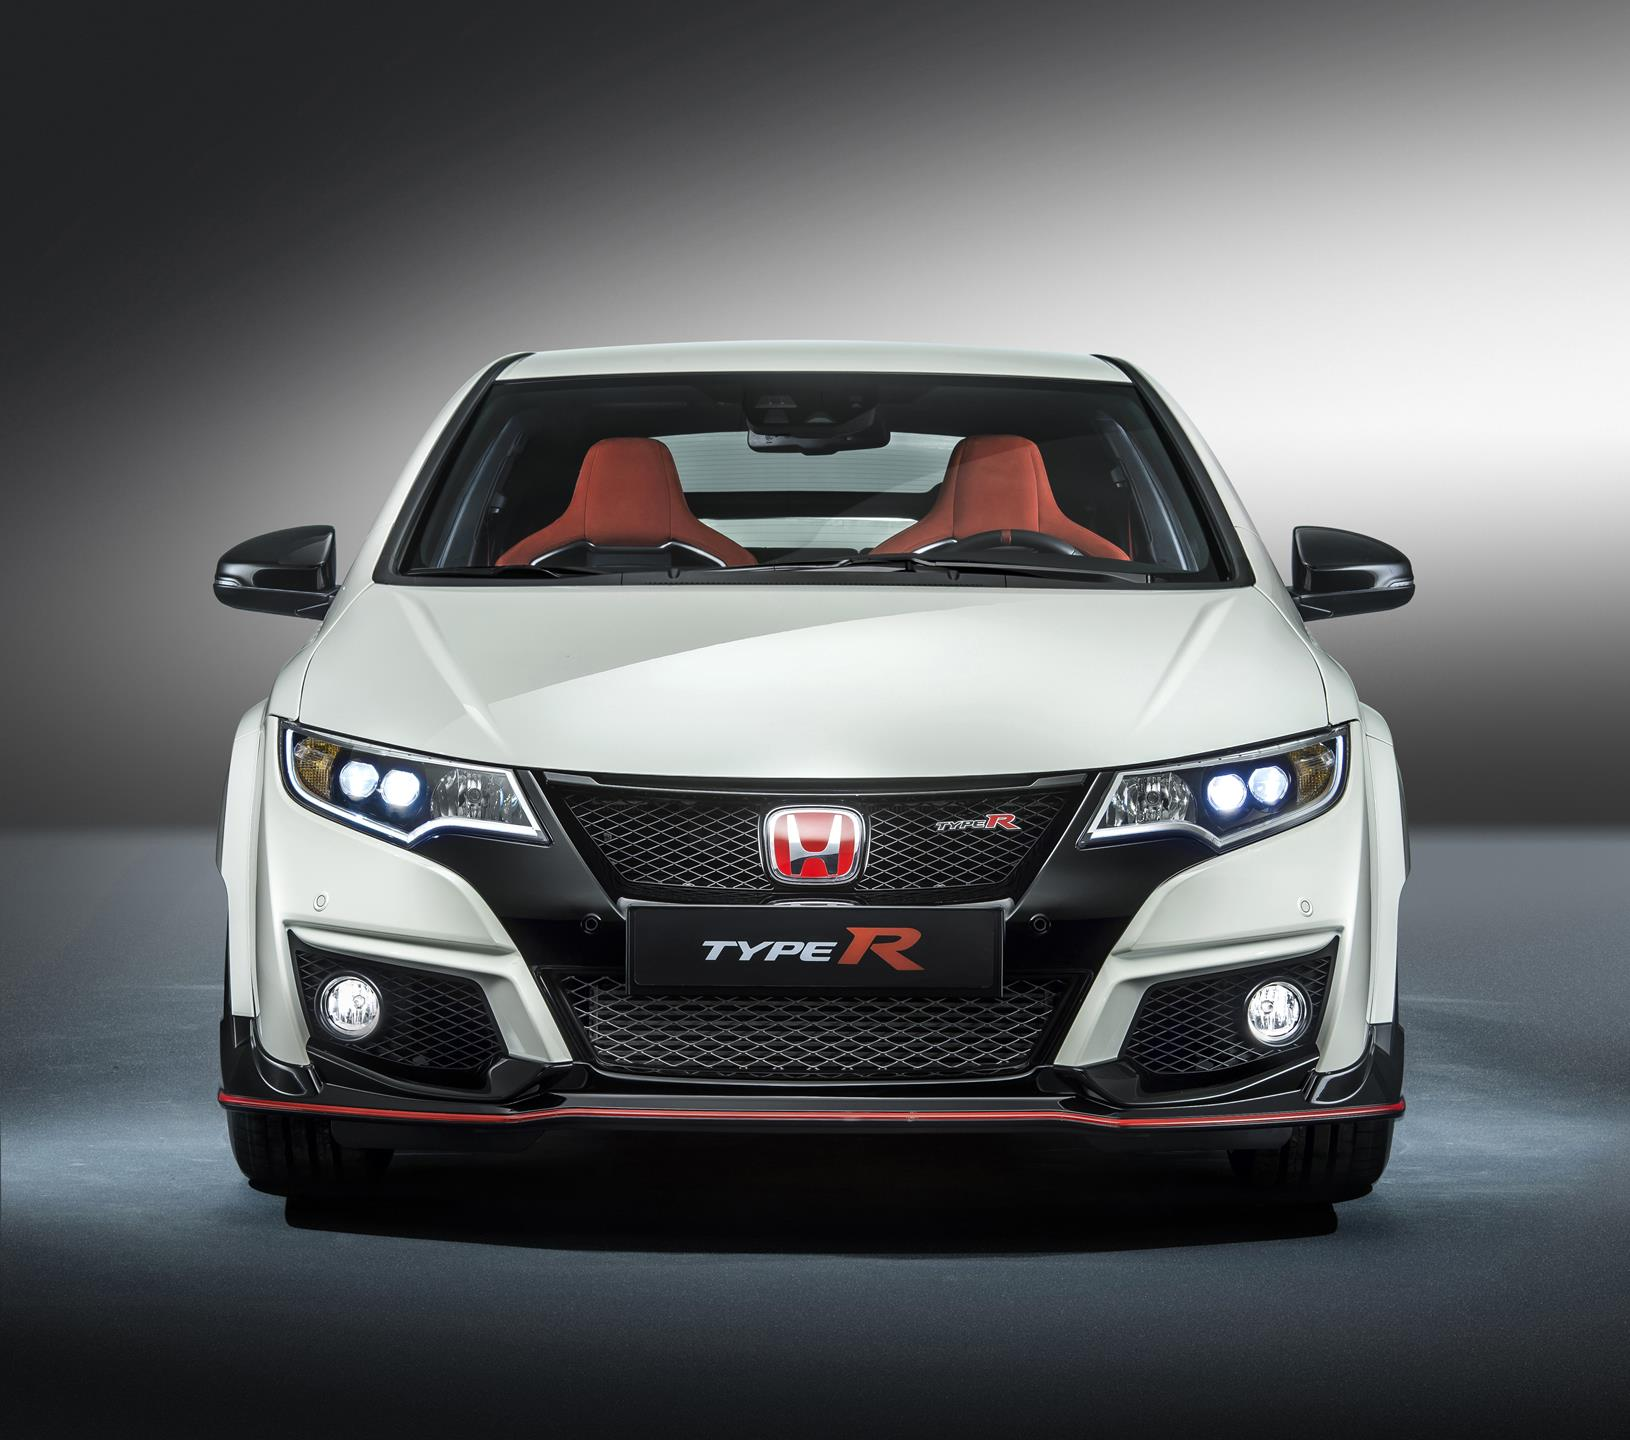 2015 honda civic type r news and information. Black Bedroom Furniture Sets. Home Design Ideas